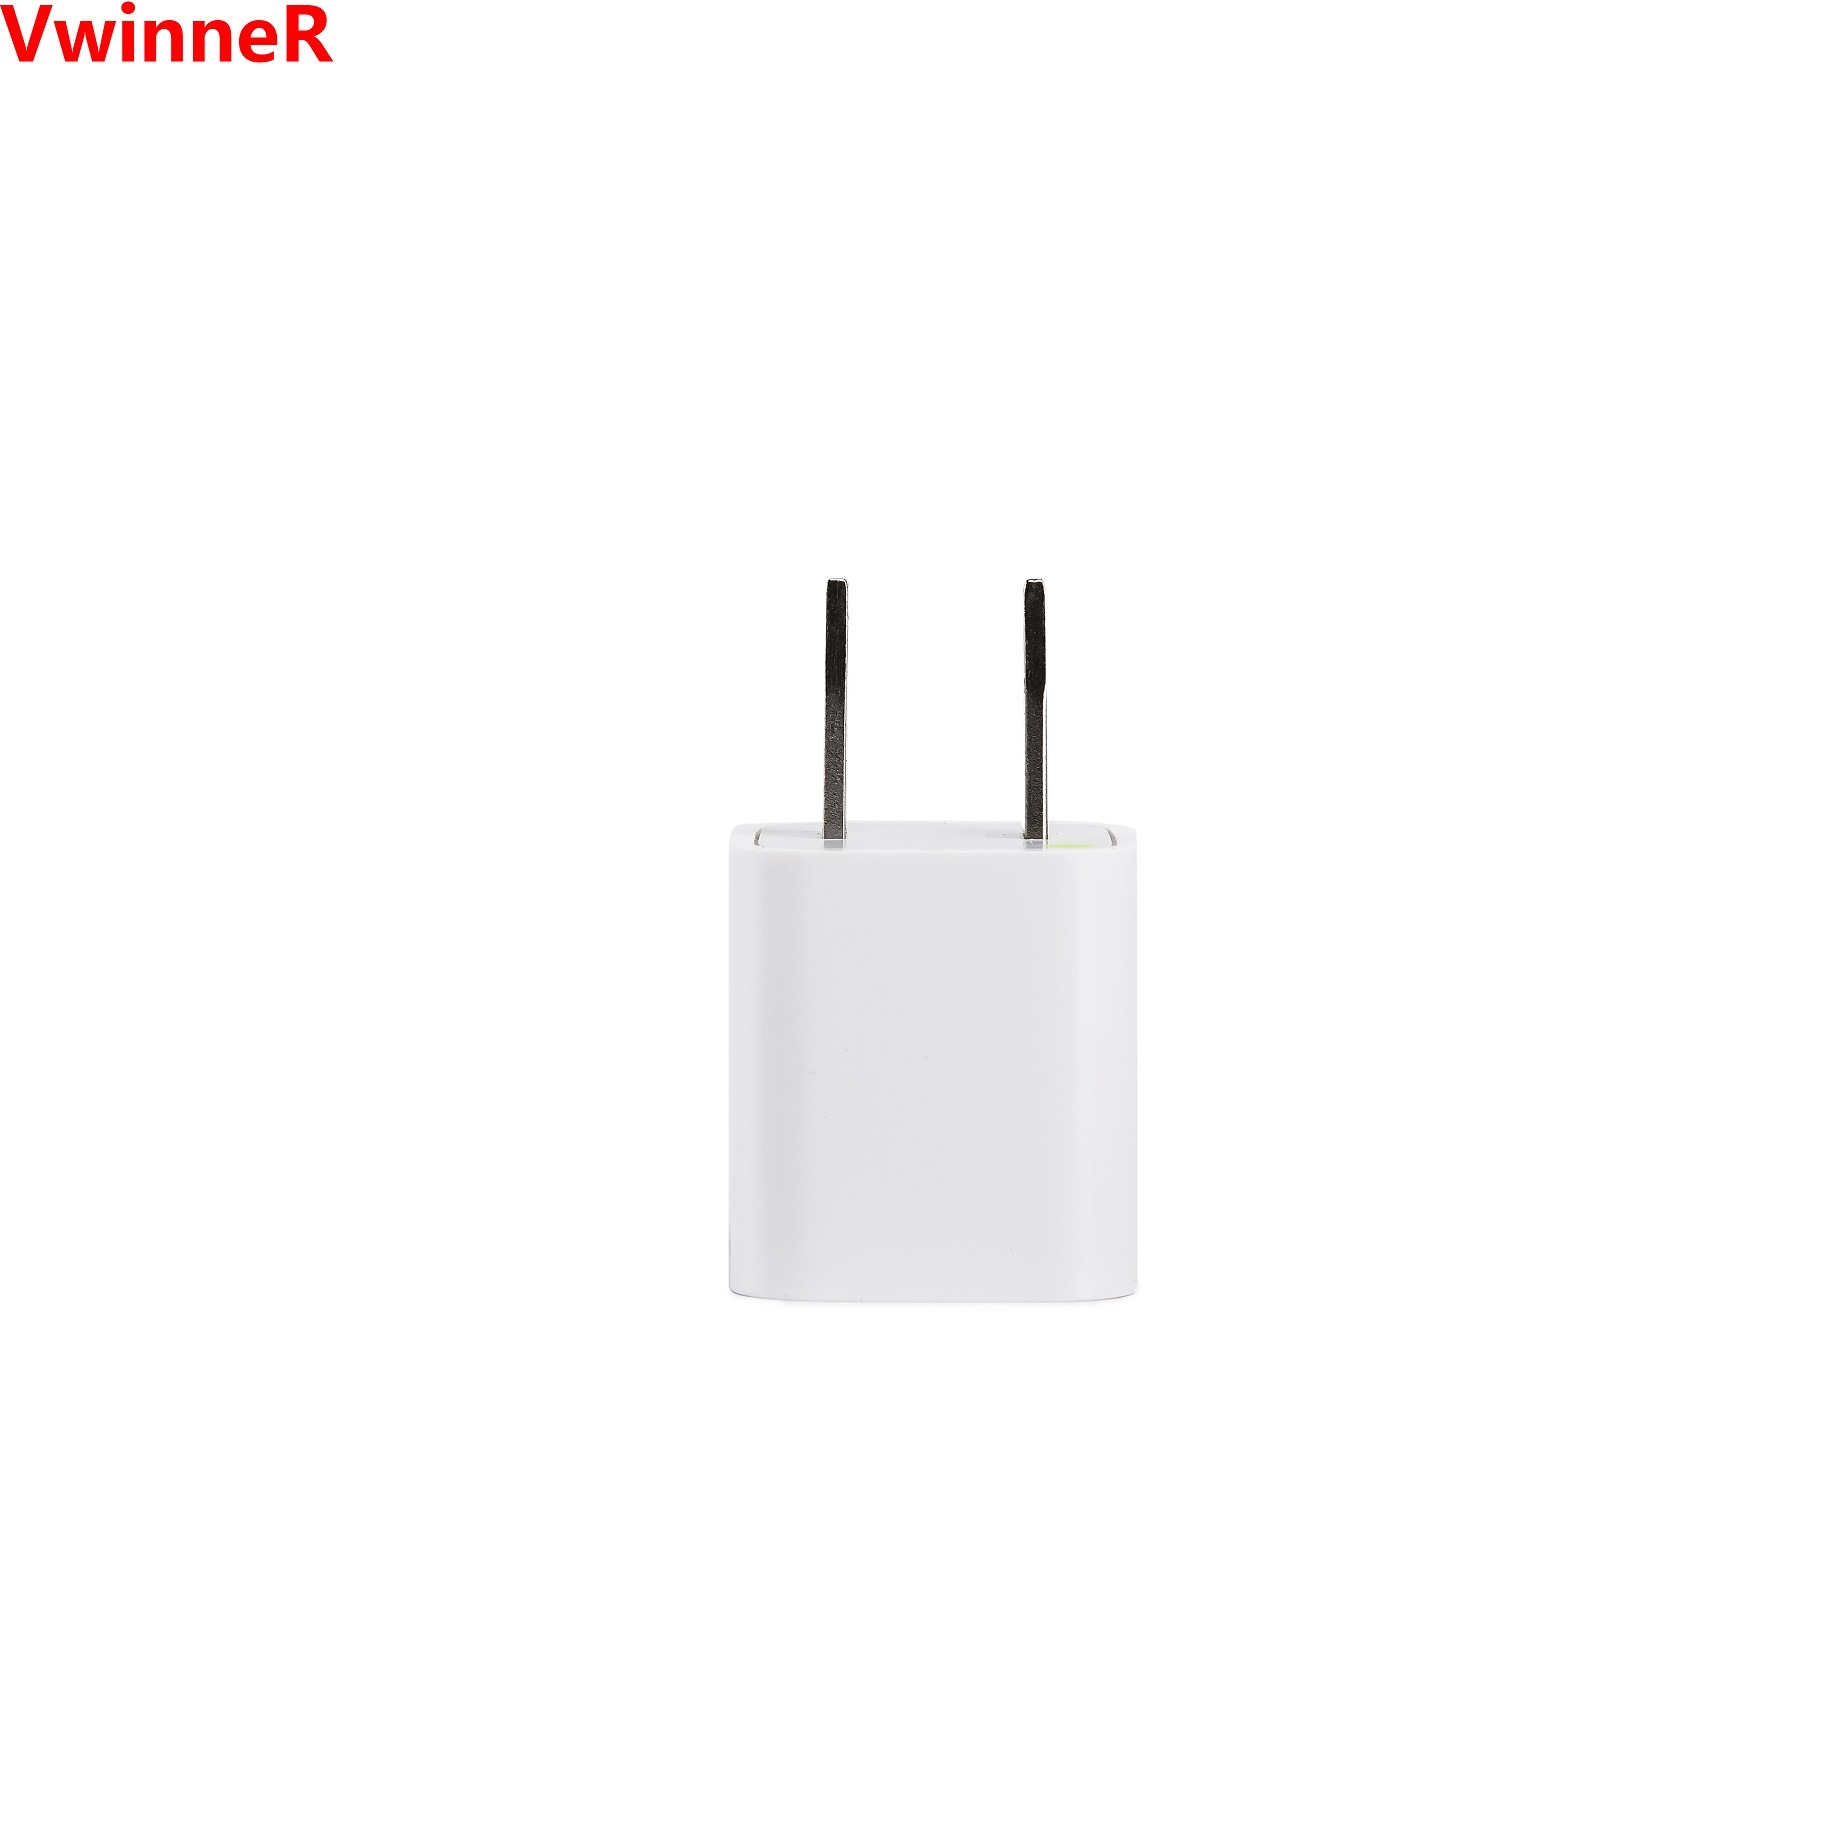 Credit Fasting Charging Wall Travel USB Charger Adapter Fit for iPhone